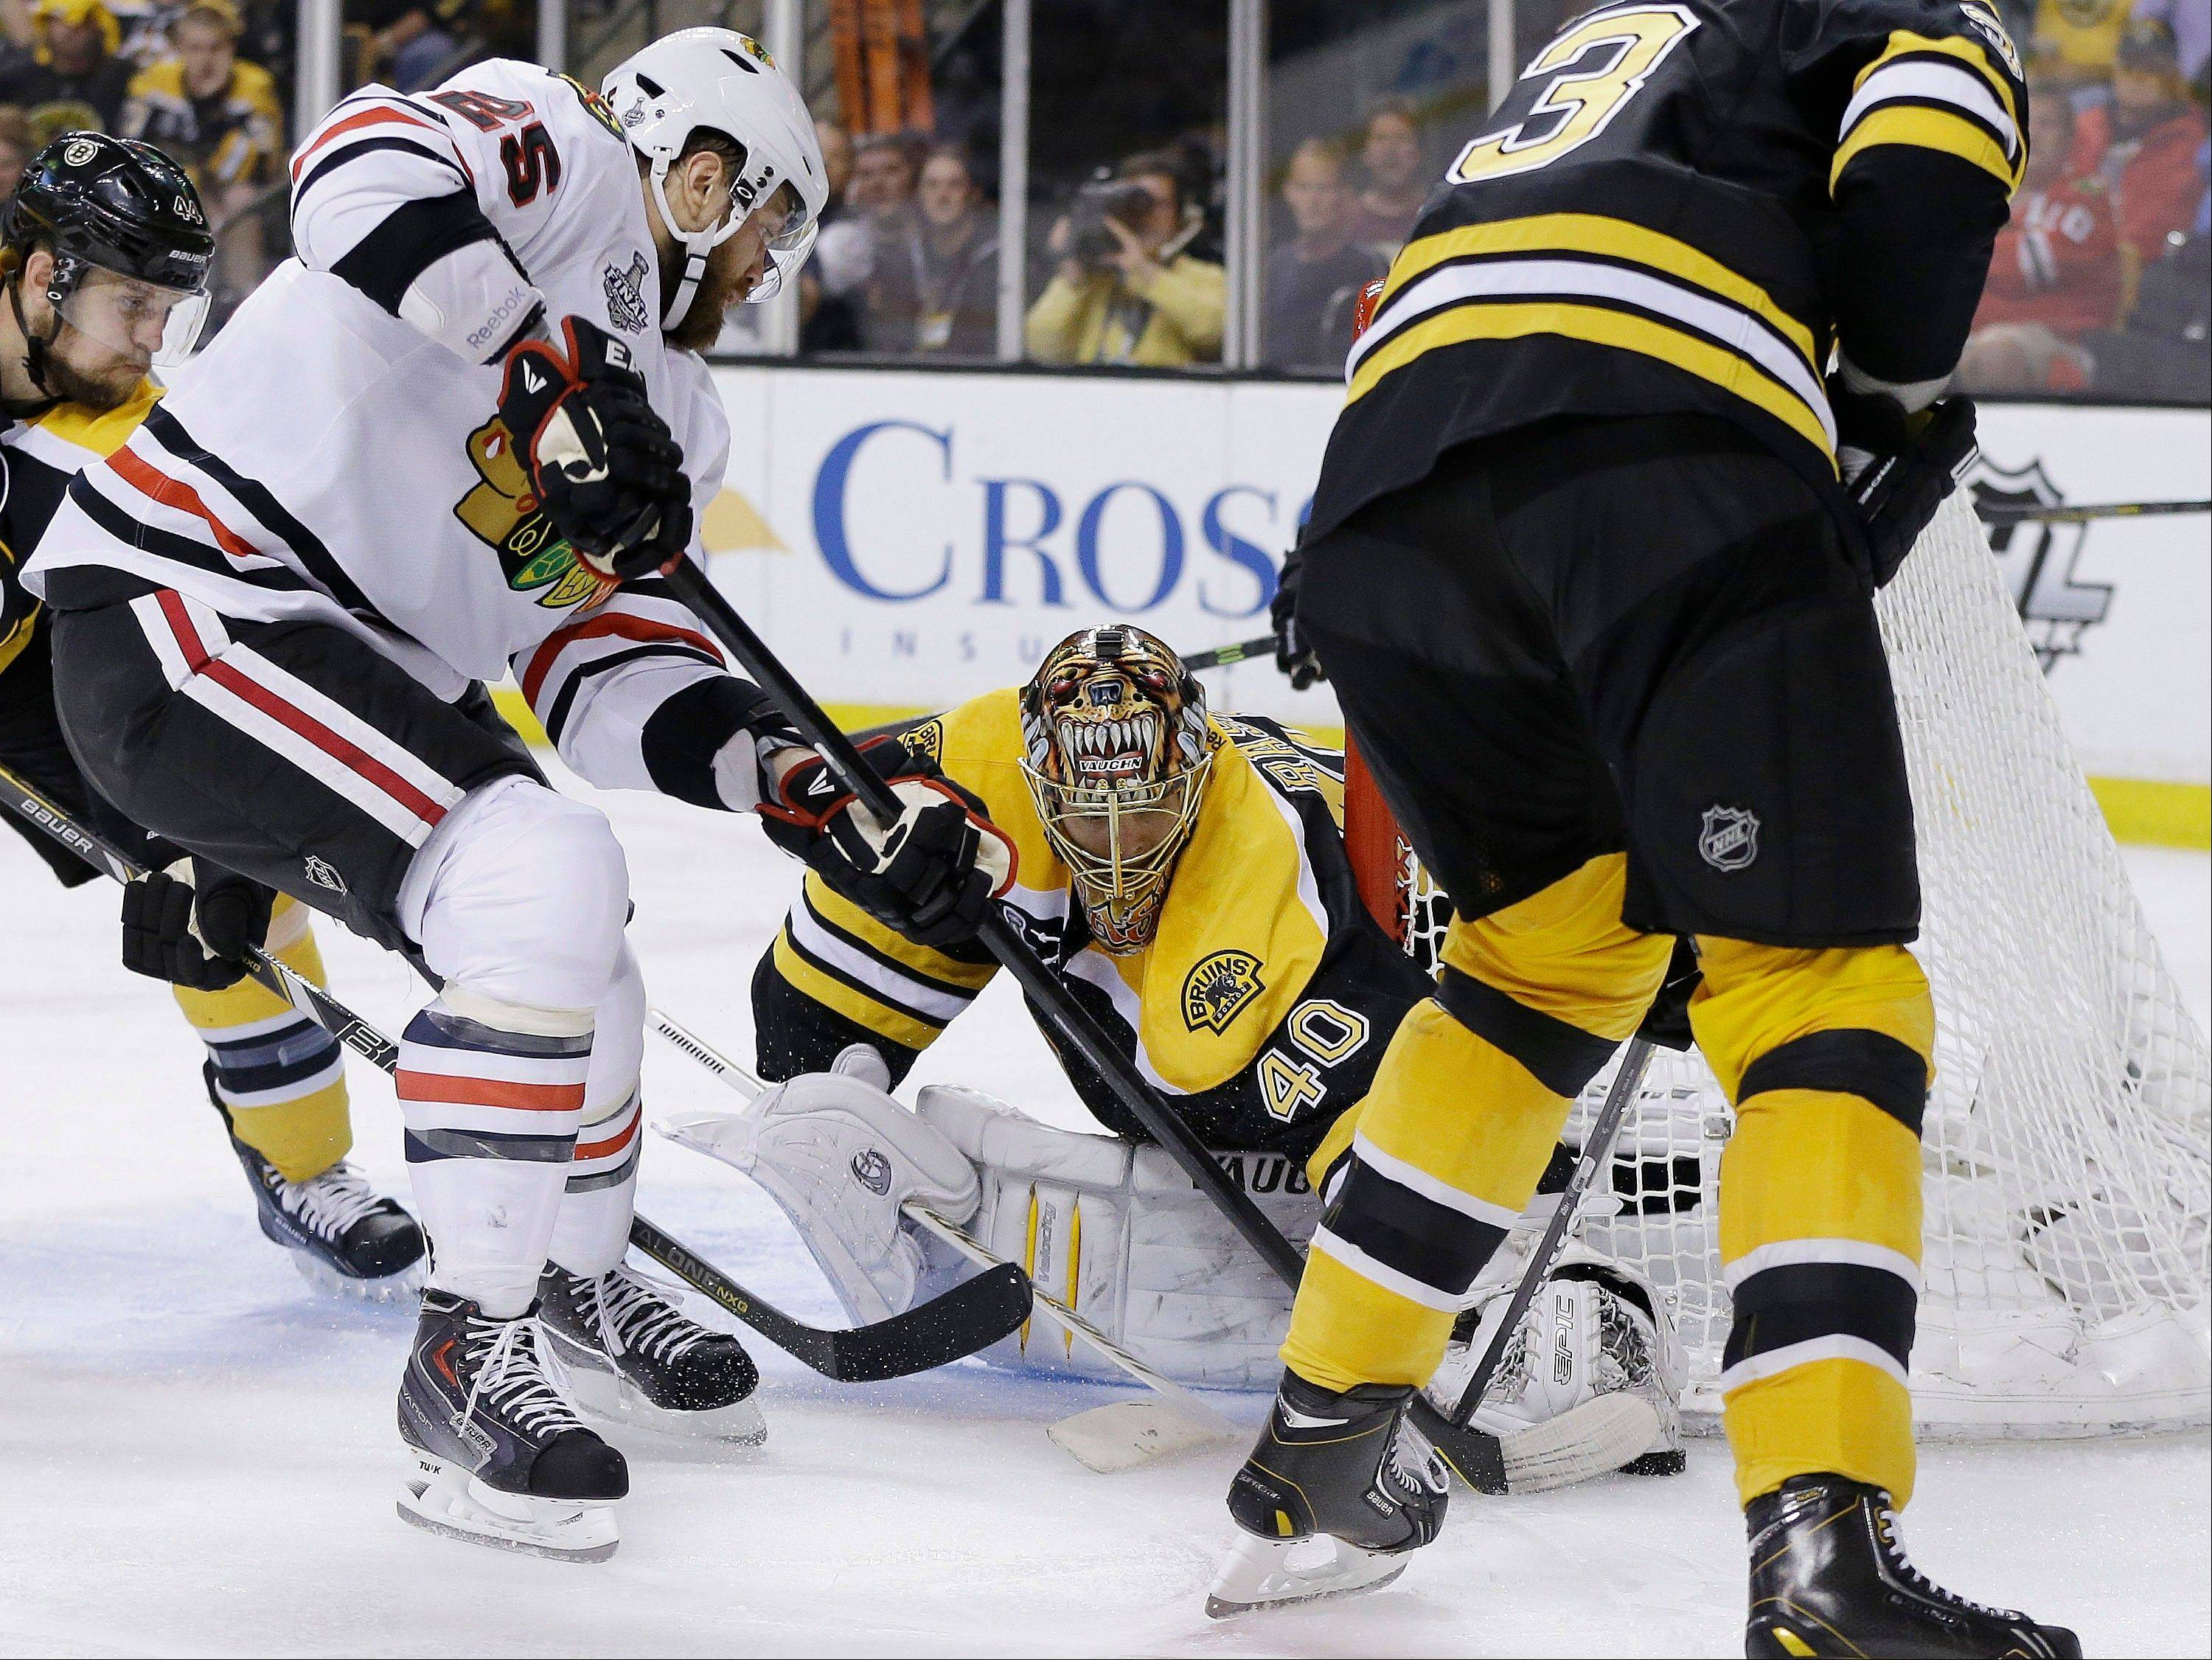 Boston Bruins goalie Tuukka Rask (40), of Finland, stops an attempt by Chicago Blackhawks left wing Viktor Stalberg (25), of Sweden, during the third period in Game 3 of the NHL hockey Stanley Cup Finals.